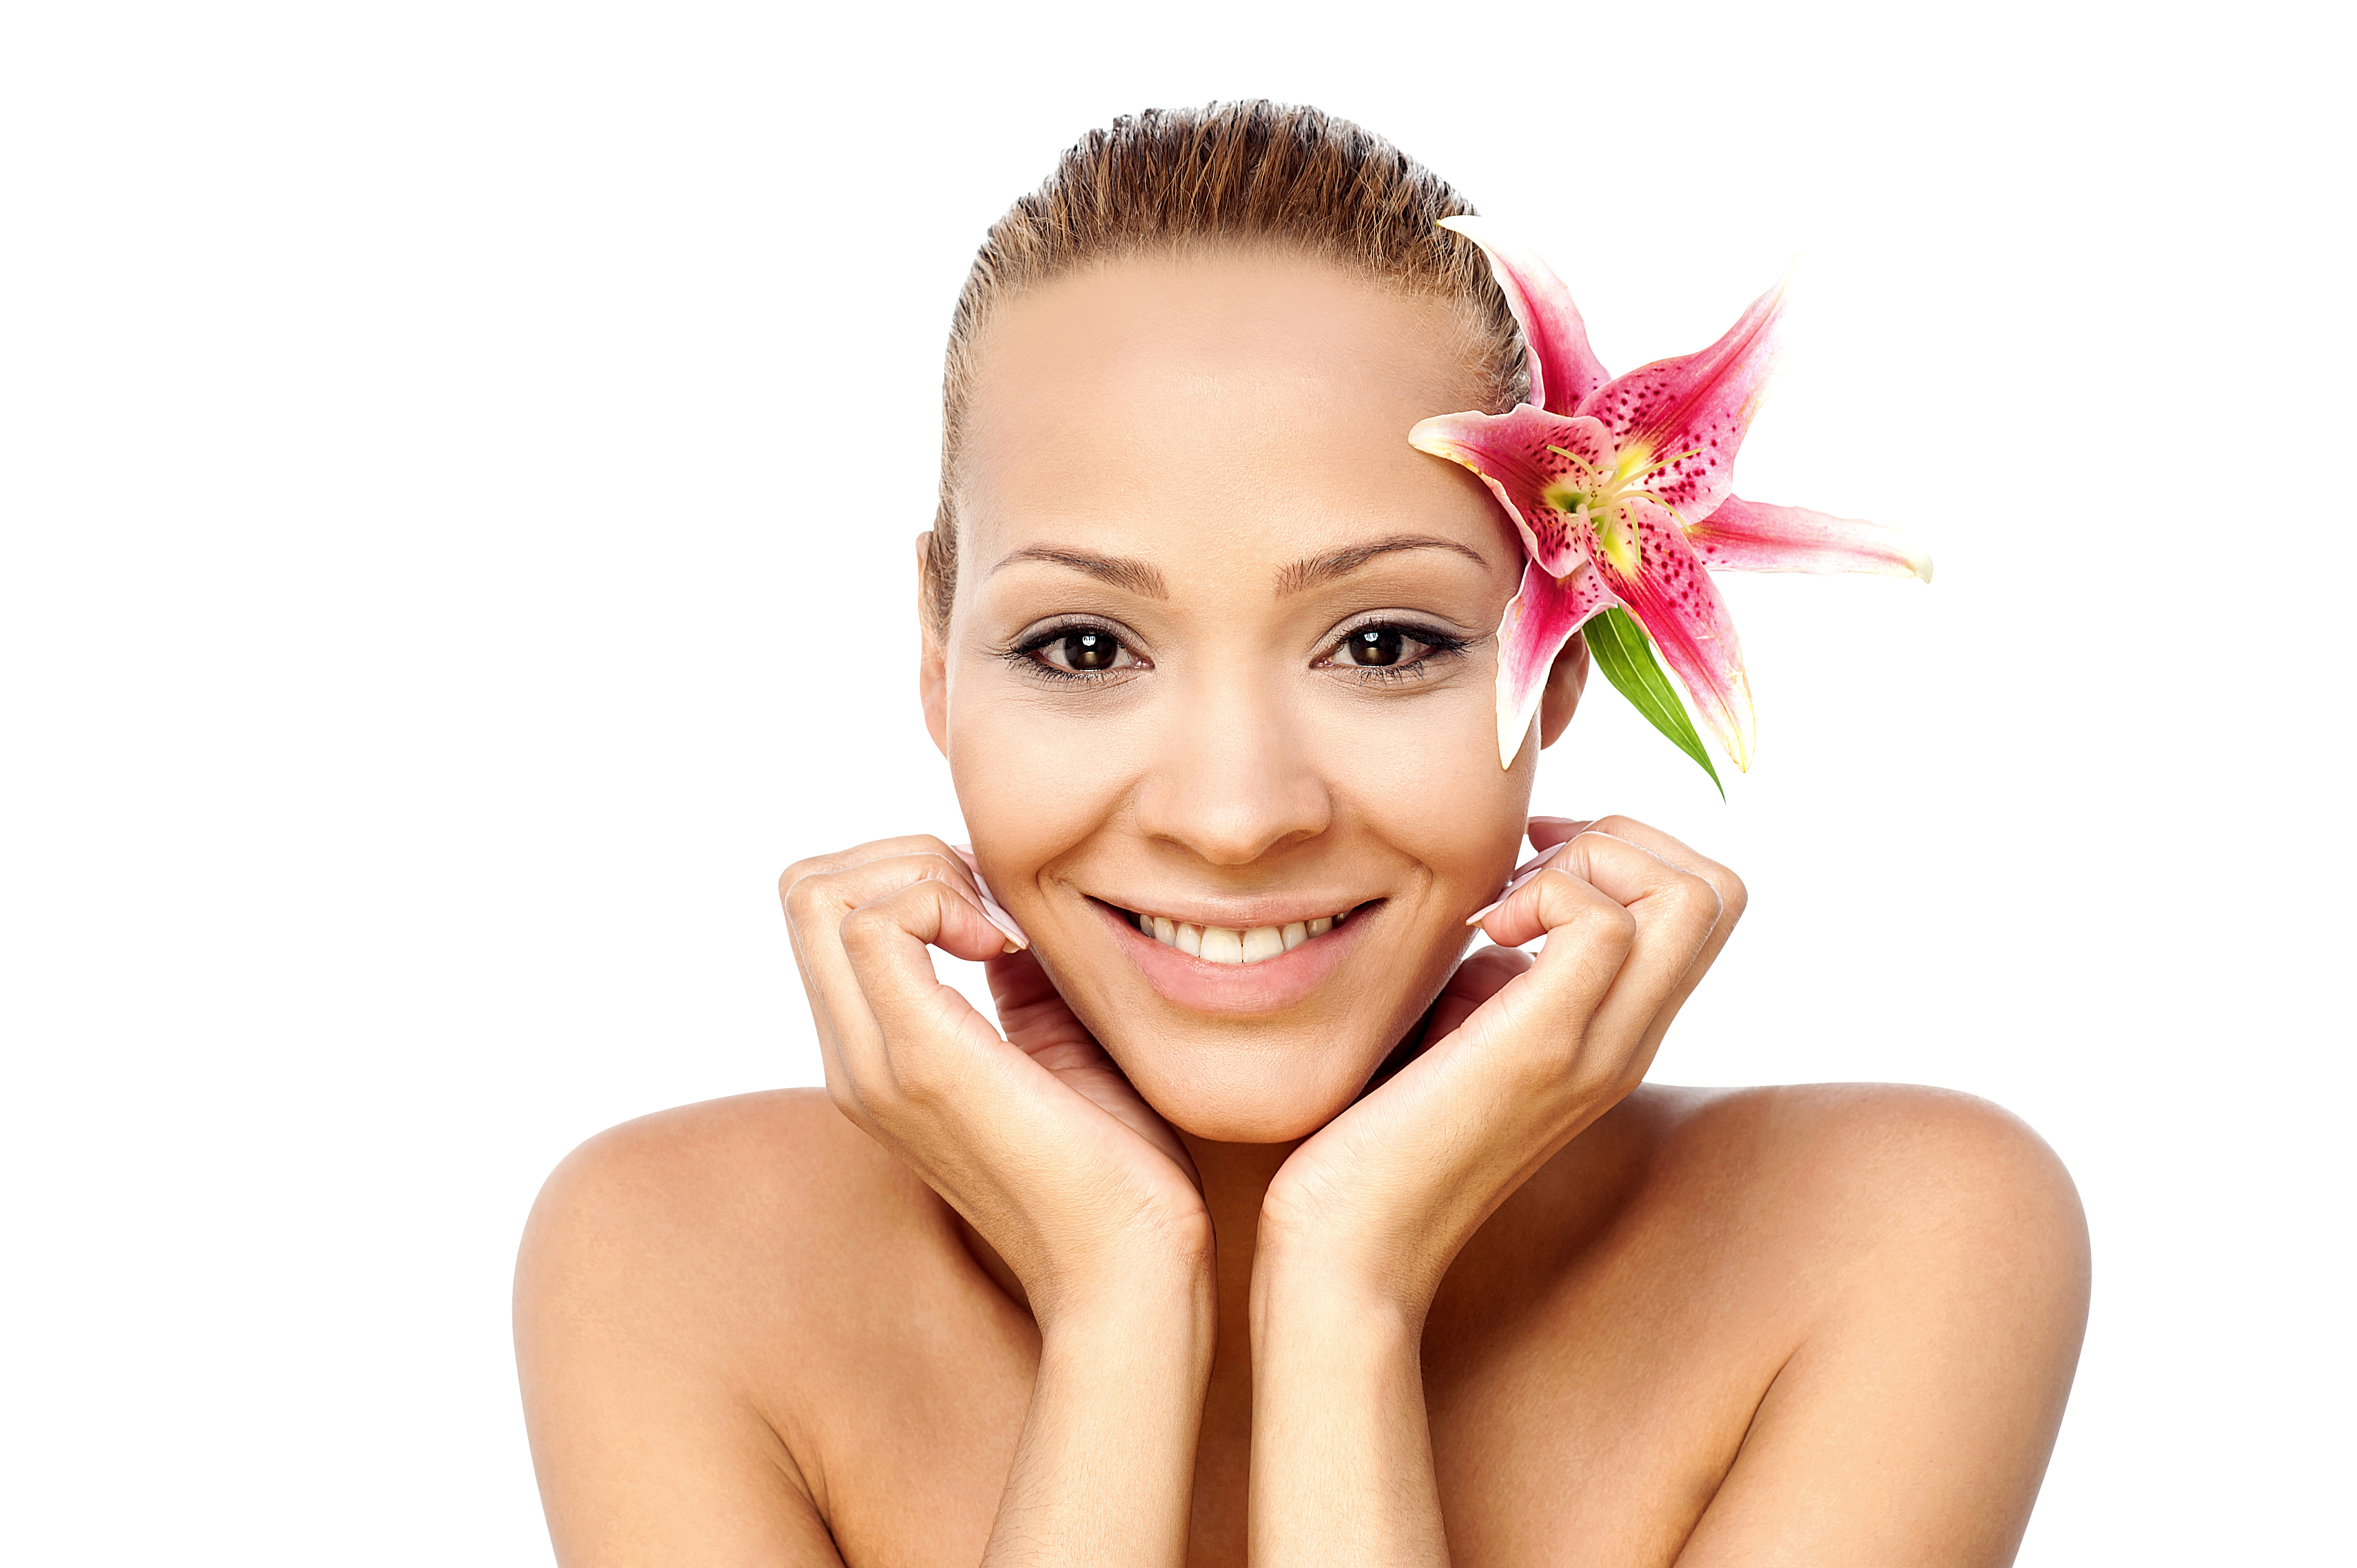 Beautiful Girl With Flower Png Image Purepng Free Transparent